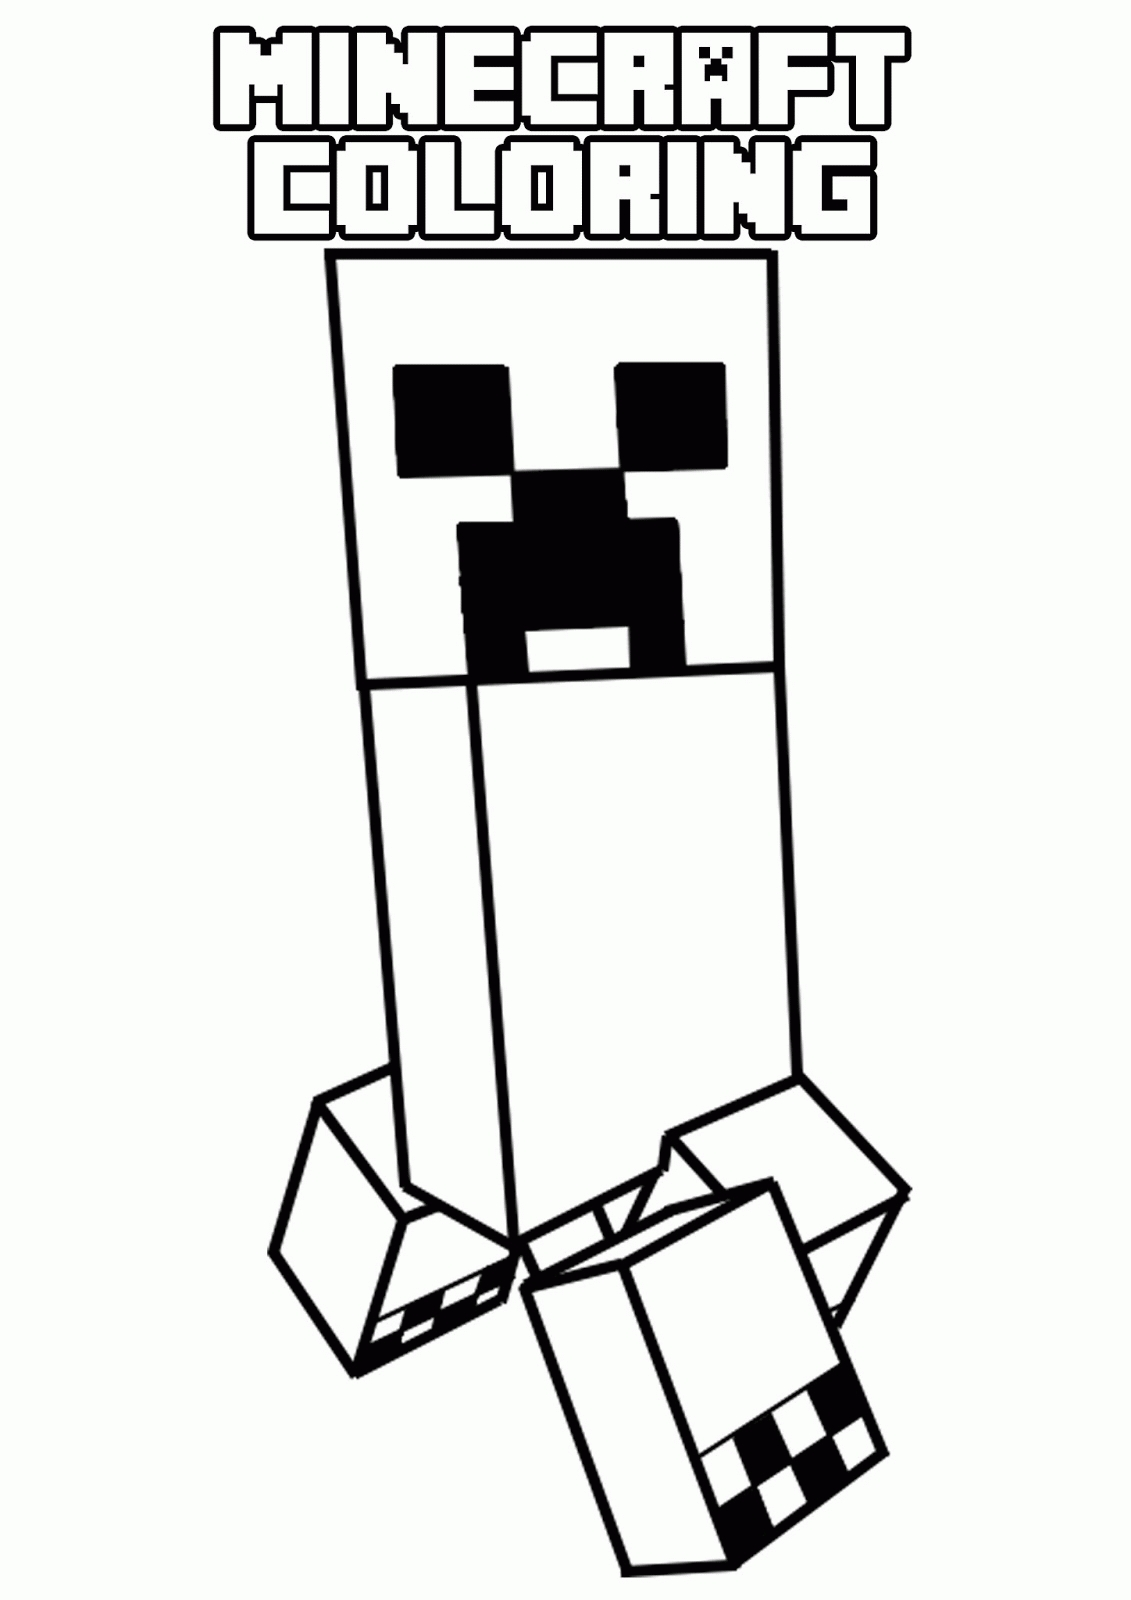 printable kitten coloring pages - printable minecraft coloring pages